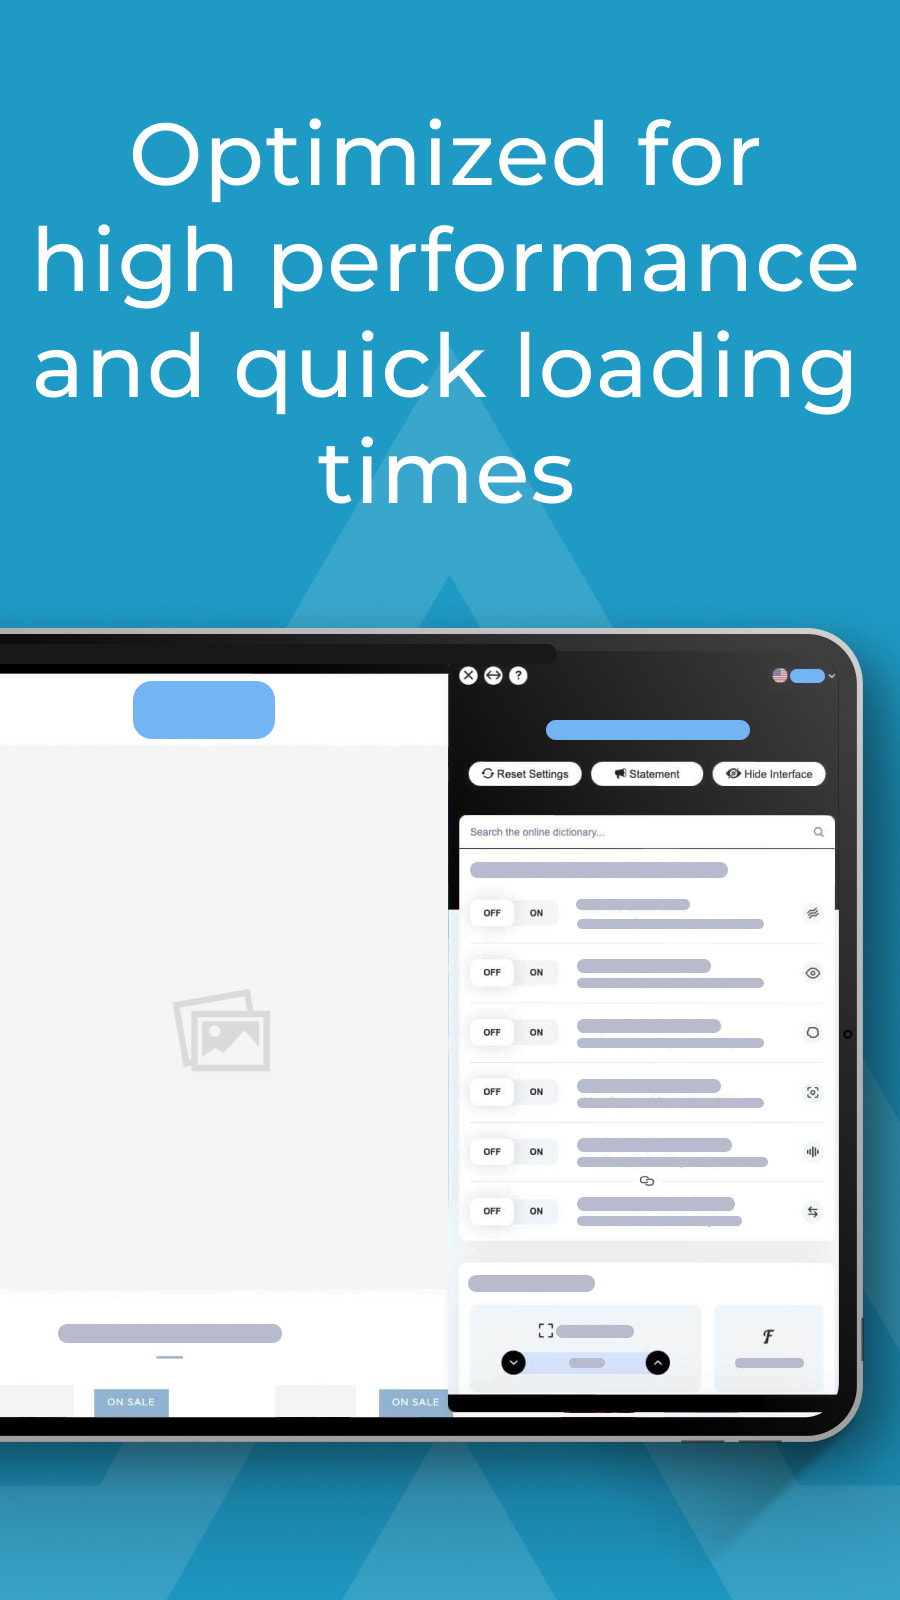 Optimized for high performance and quick loading times